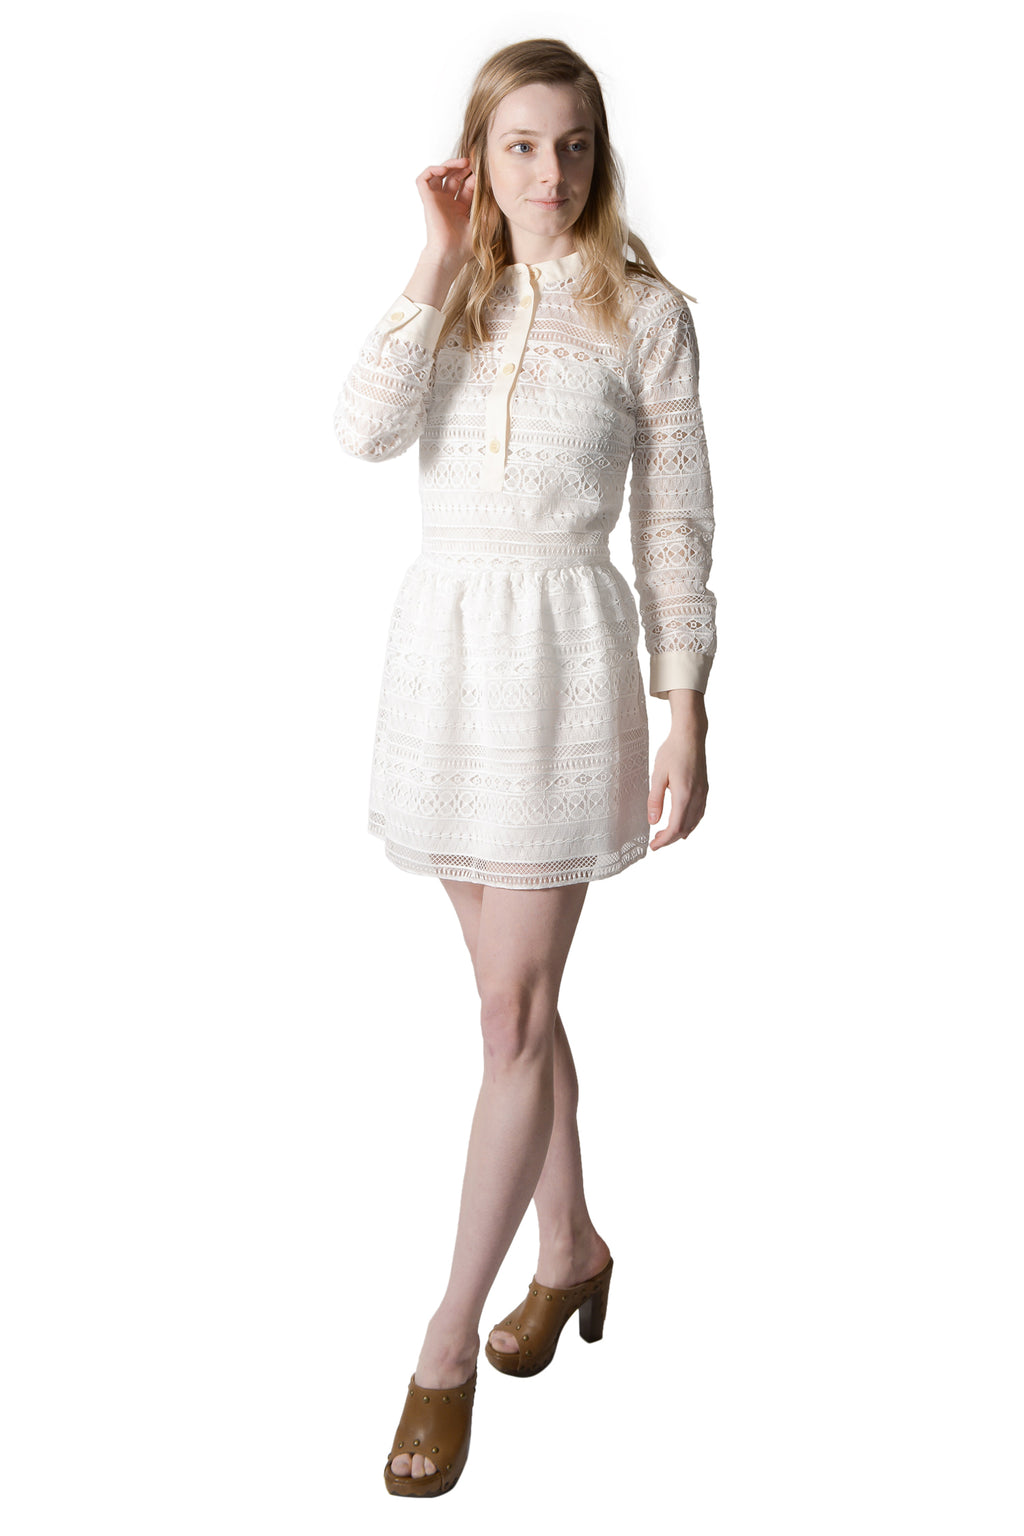 RED Valentino White Embroidered Dress Size 40 Retail $1550